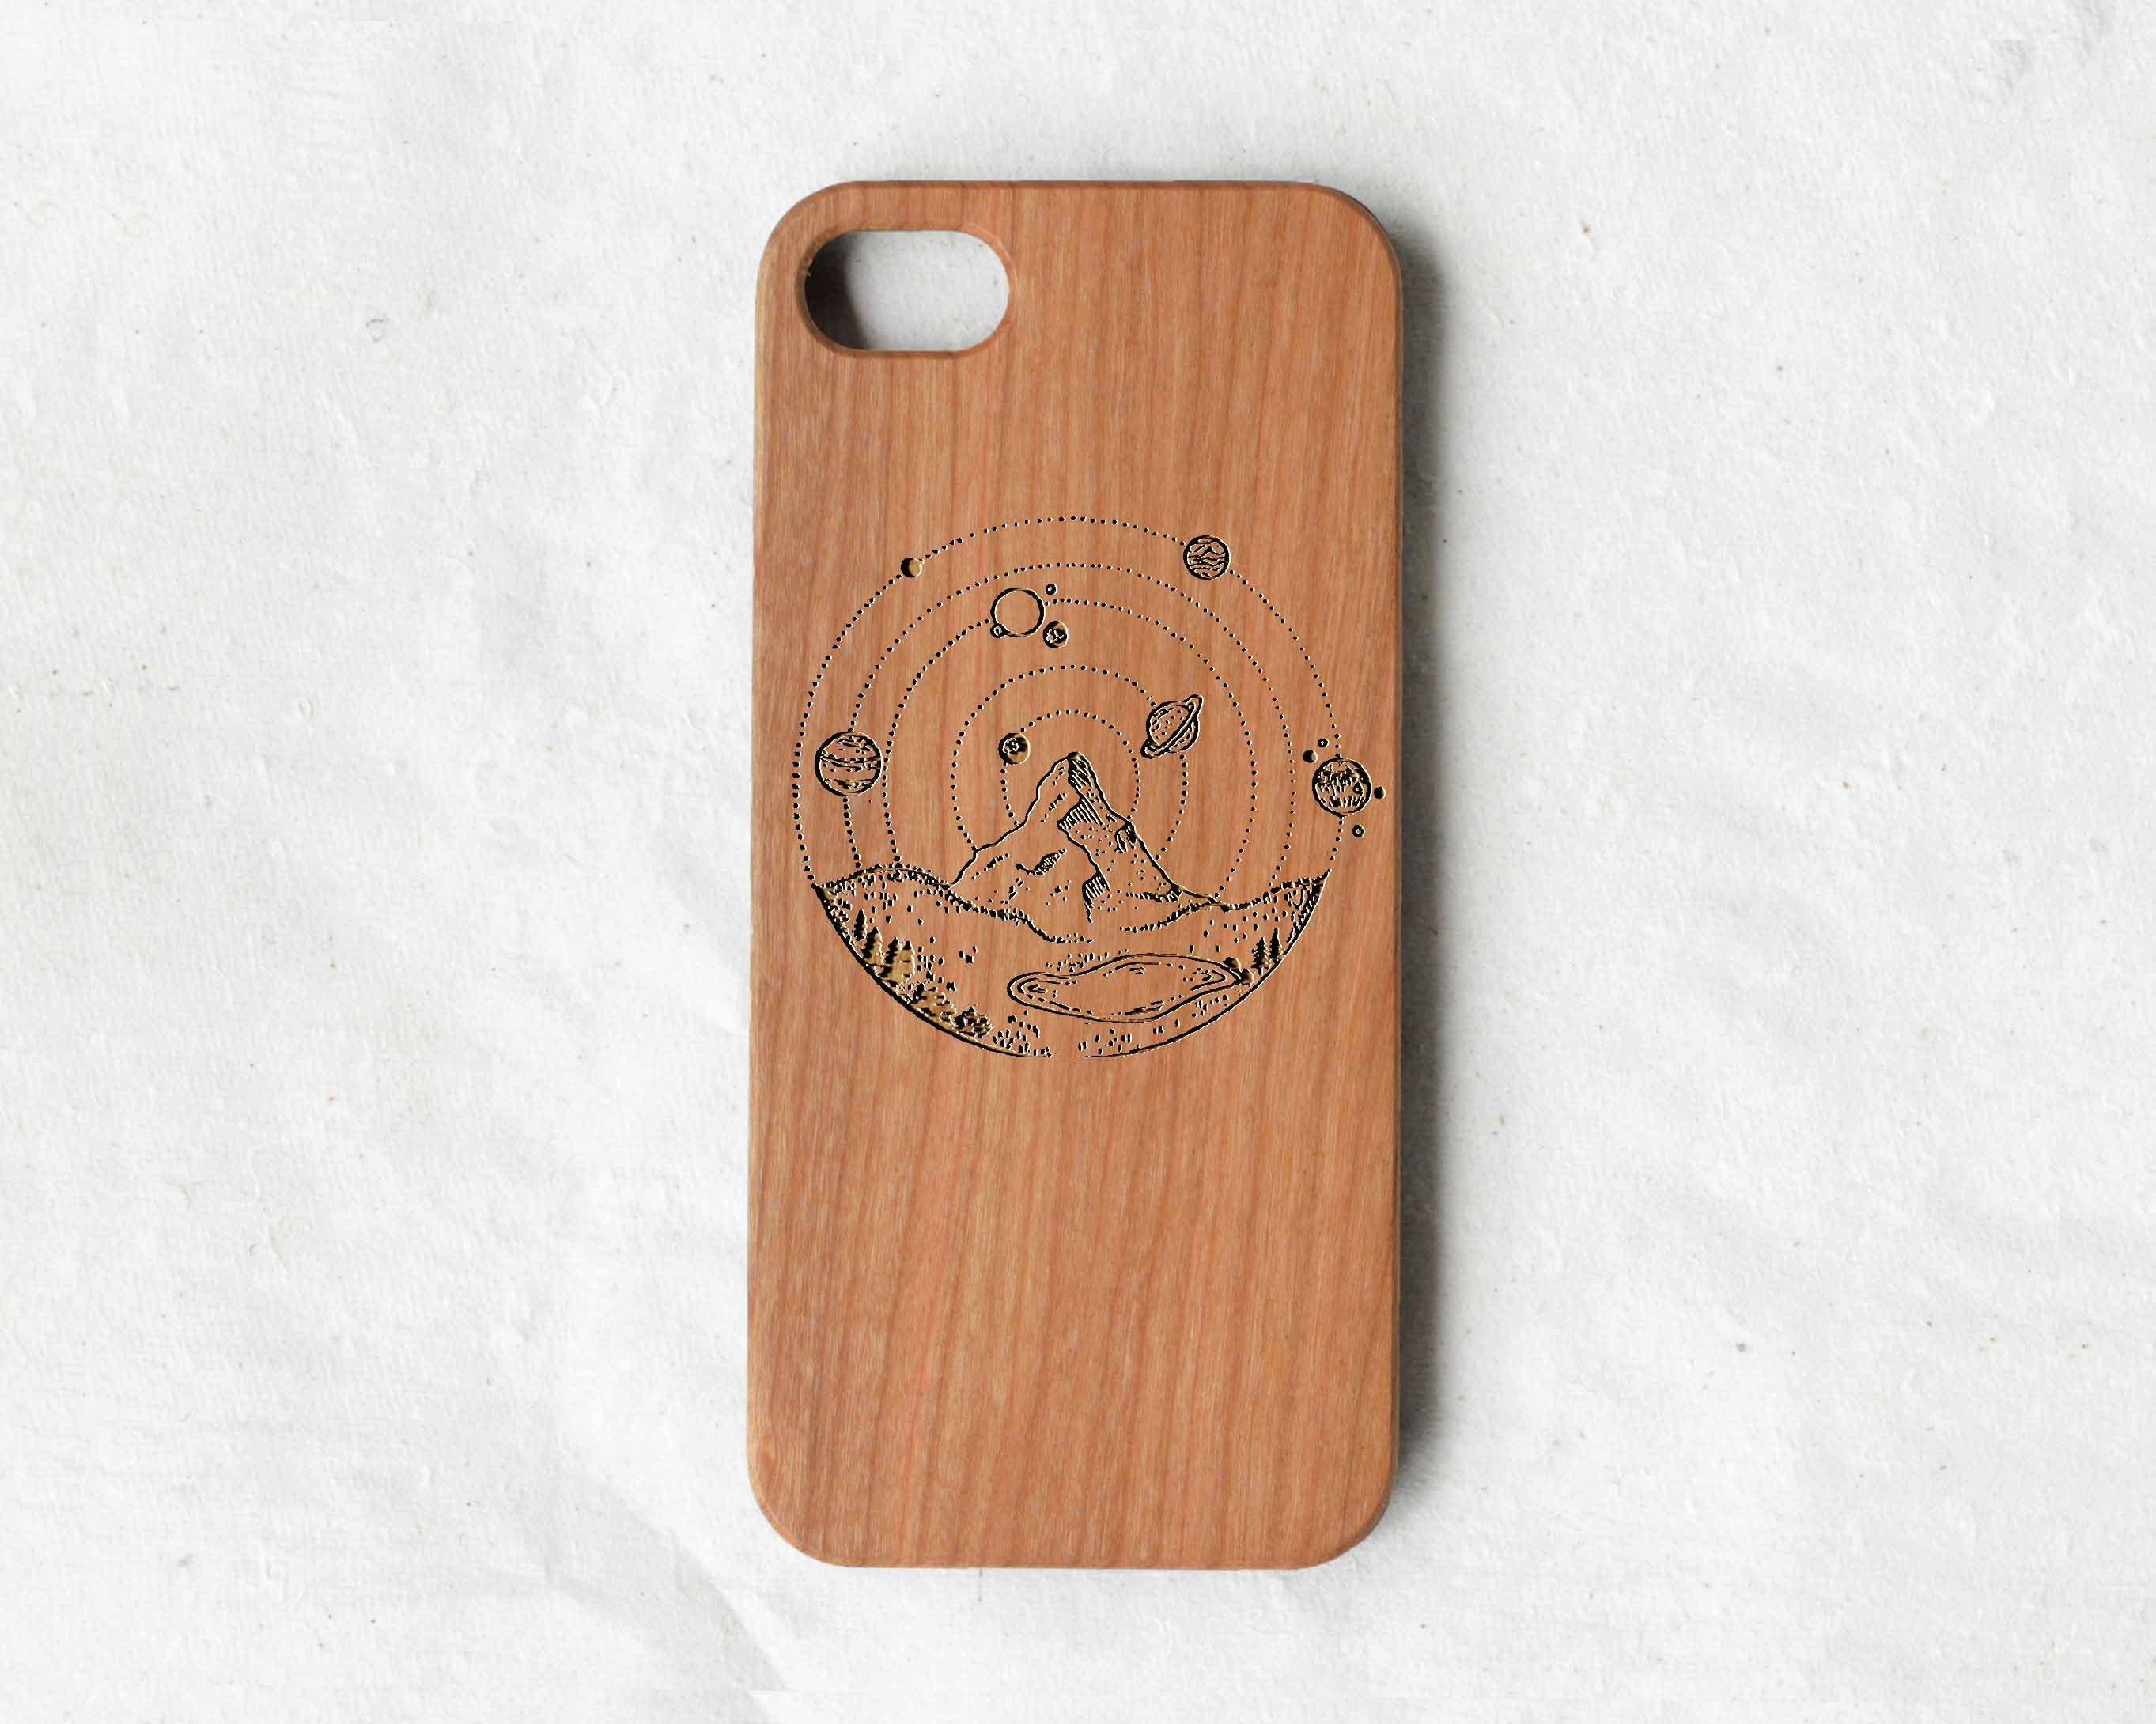 huge discount d2fe2 aa3e1 Outdoor style mandala wood iPhone 8 case,wooden iPhone 8 cover wood phone  case for iPhone 5s/se//6s/6s plus/7/7 plus/8/8 plus/x/xr/xs/xs max